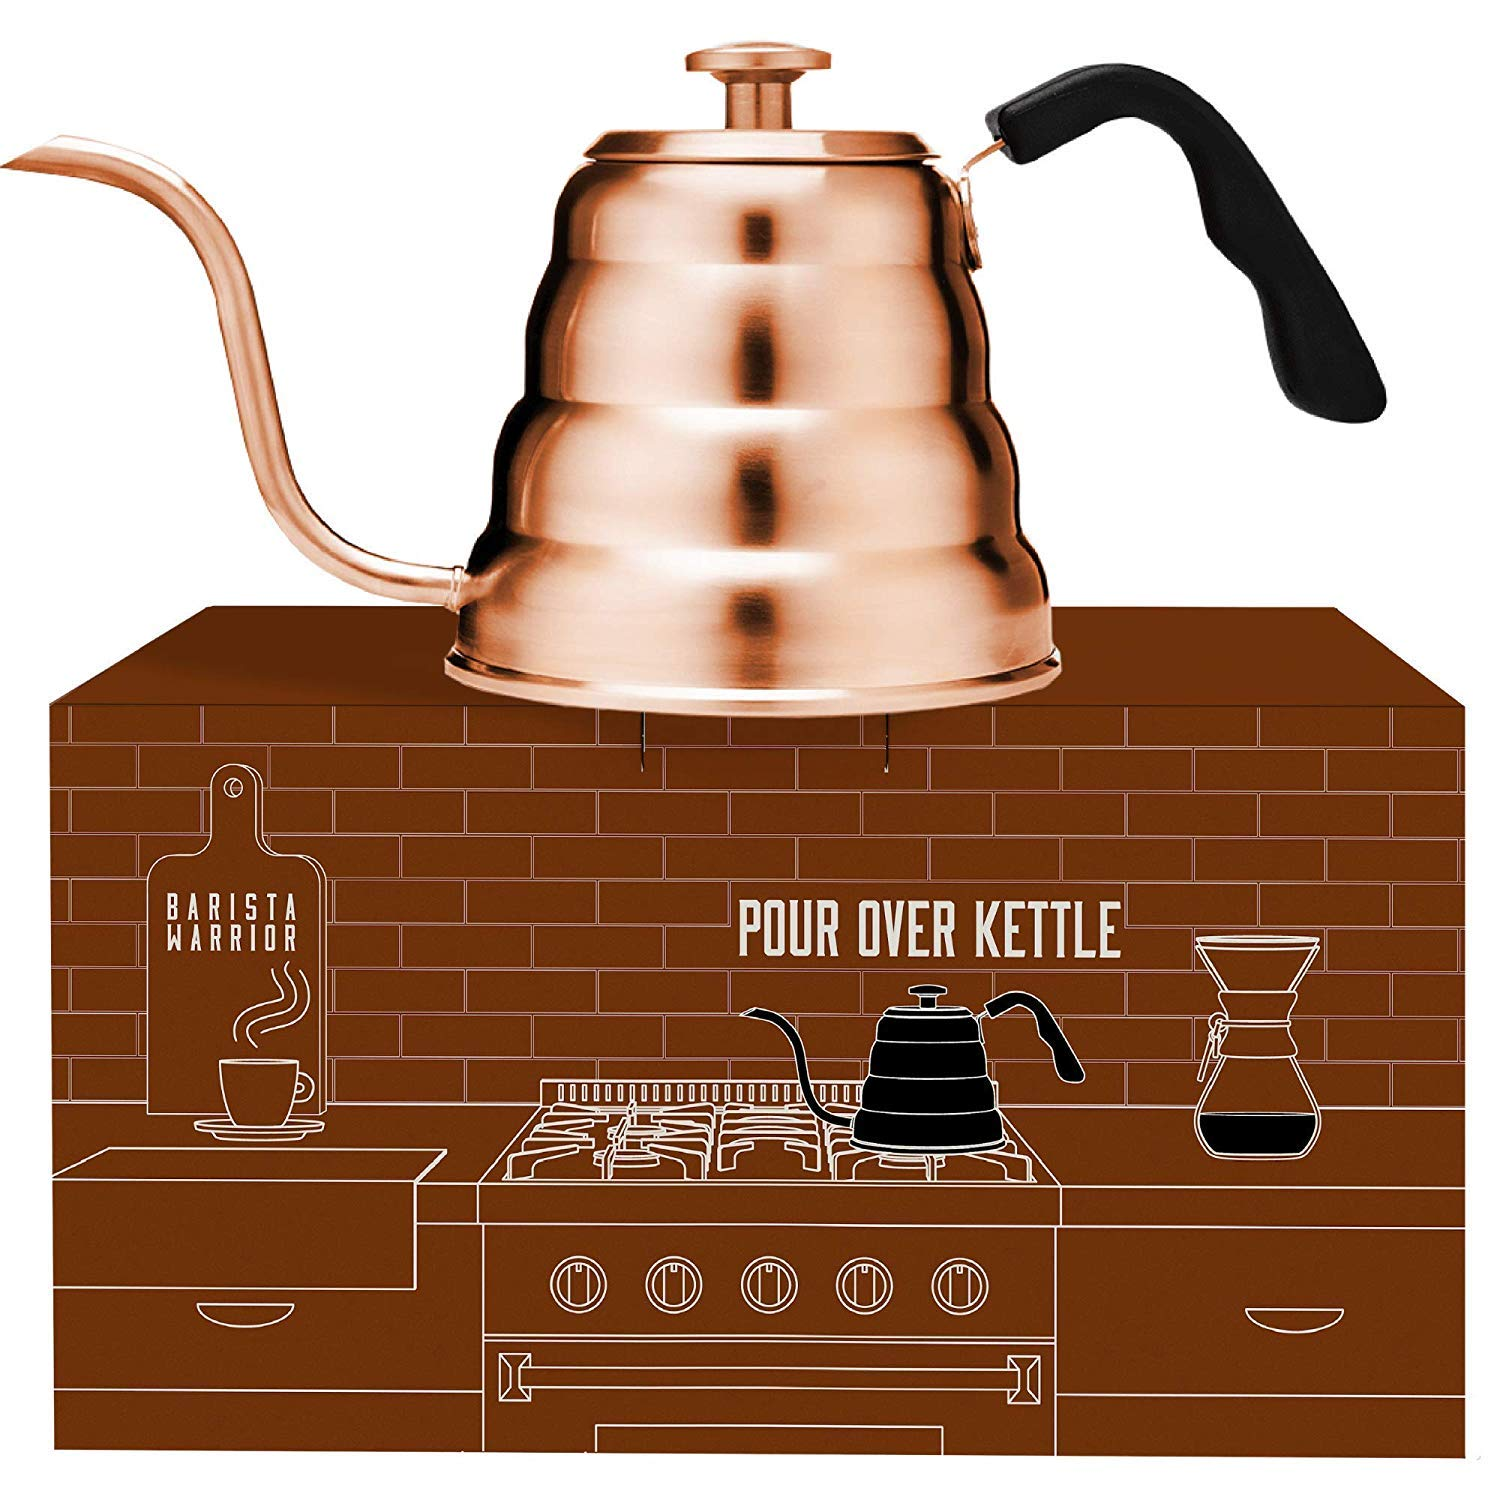 Copper Kettle with Thermometer for Exact Temperature - Copper Coated Gooseneck Pour Over Kettle for Coffee and Tea (1.2 Liter | 40 fl oz) (Copper Coated Stainless Steel)